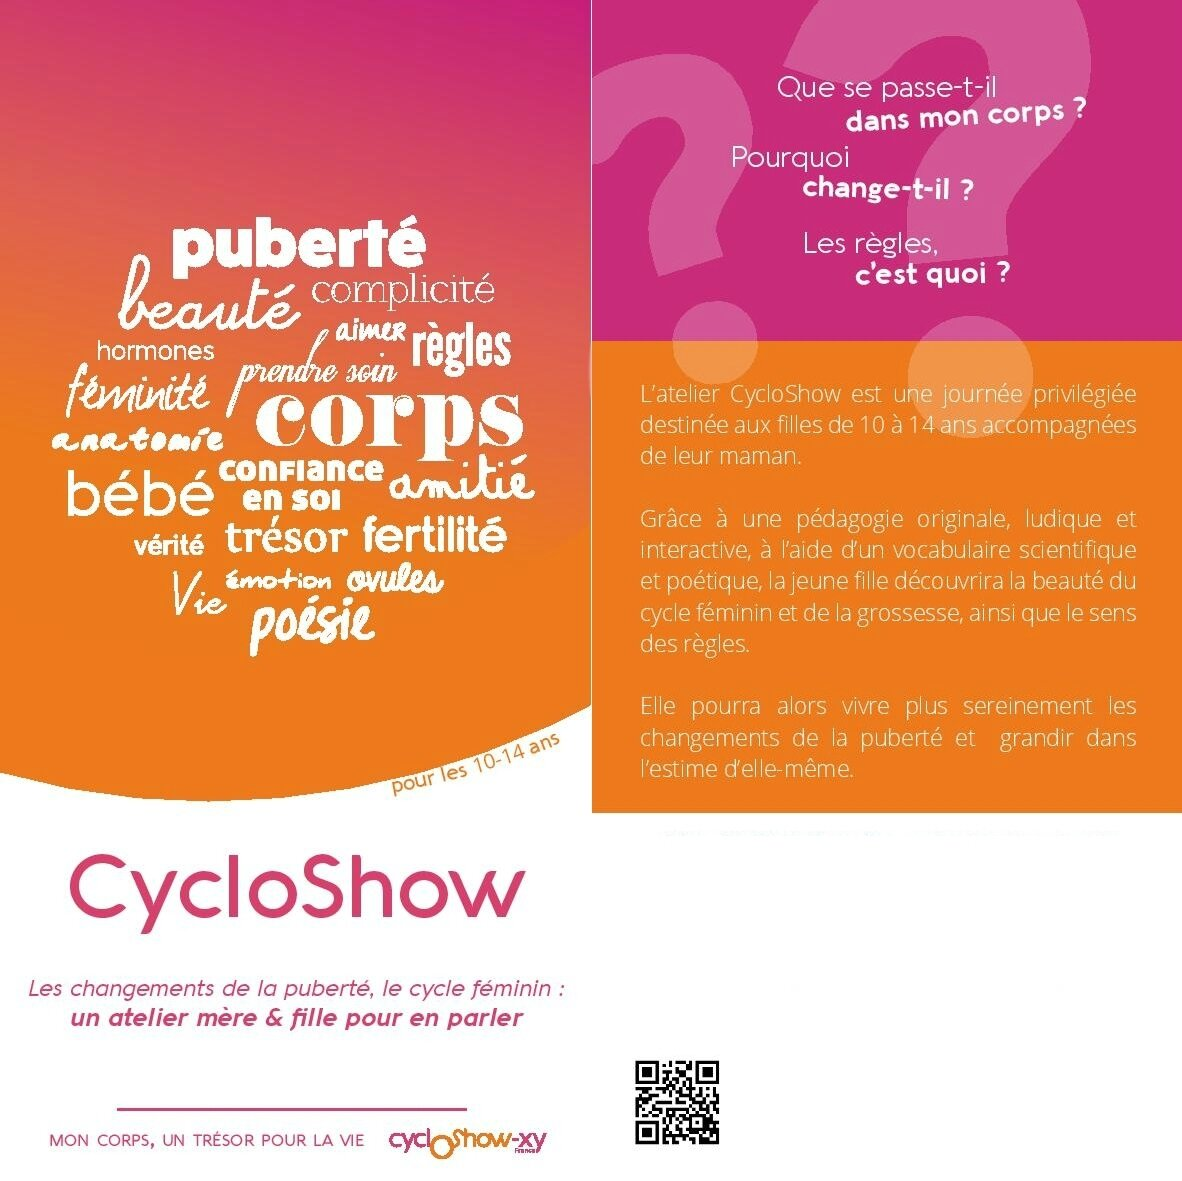 Session Cycloshow à Bourgoin le 08 avril 2017